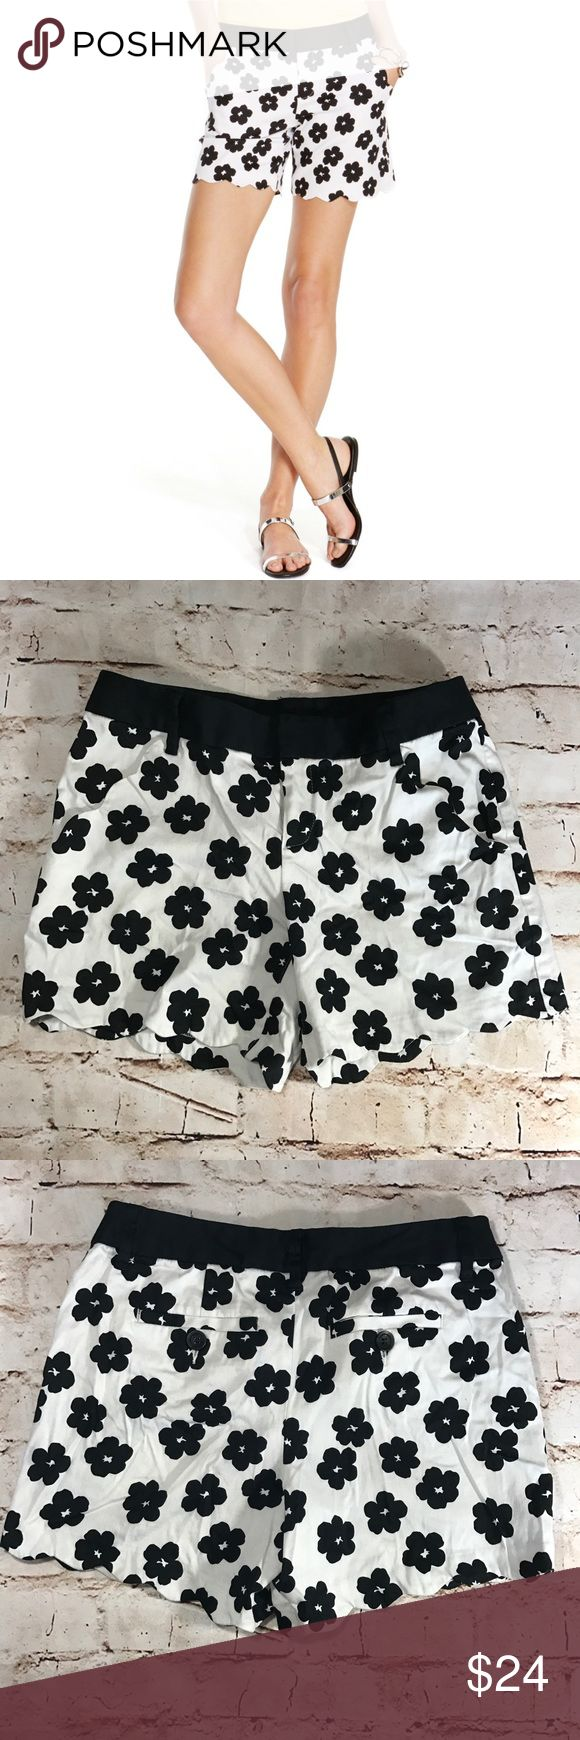 INC- Floral Print Shorts Black and white retro-floral print shorts with scalloped cuffs and pocket design. Mid-rise, waist sits below natural waist. Slim fit at hips and thighs. Double hook & bar closures with zipper. Front pockets and belt loops. 98% Cotton; 2% Spandex. INC International Concepts Shorts